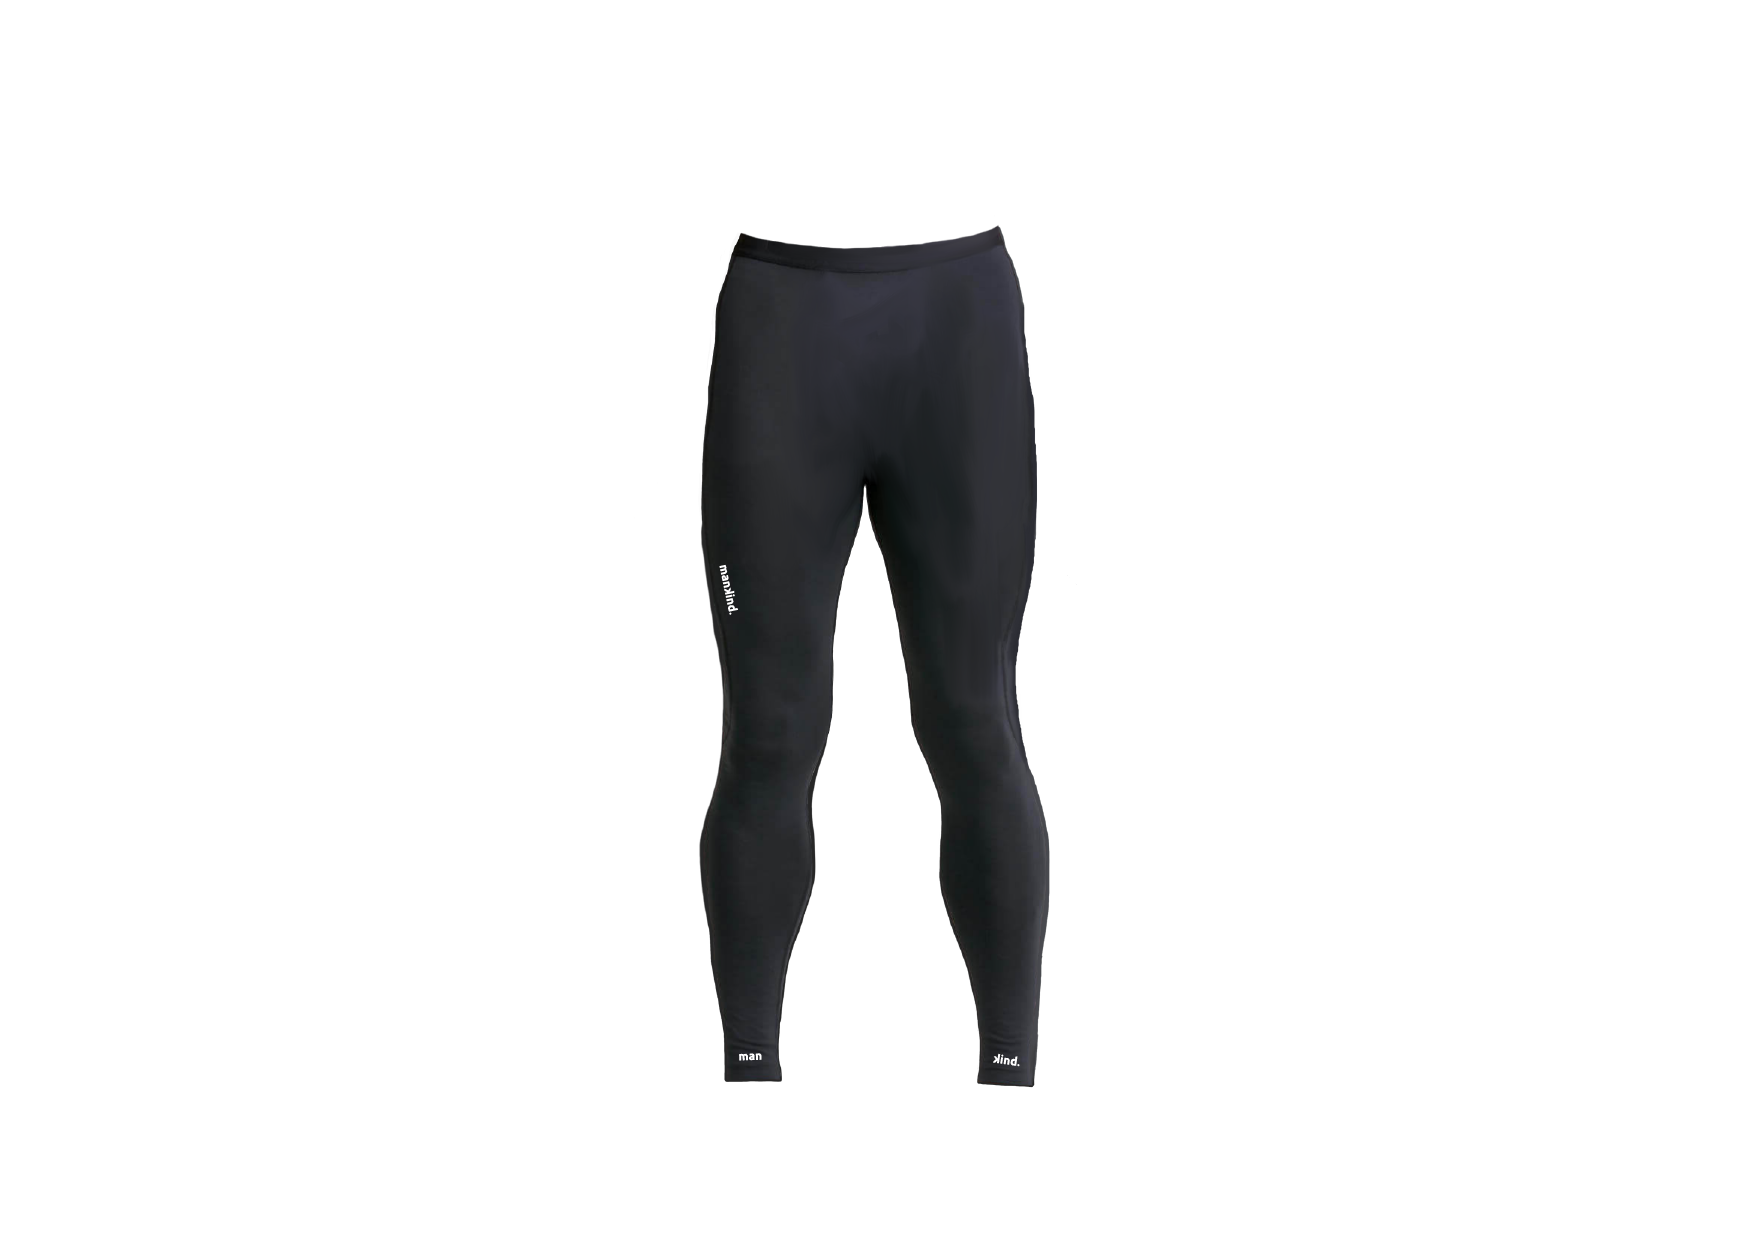 Men's compression leggings for start up activewear company